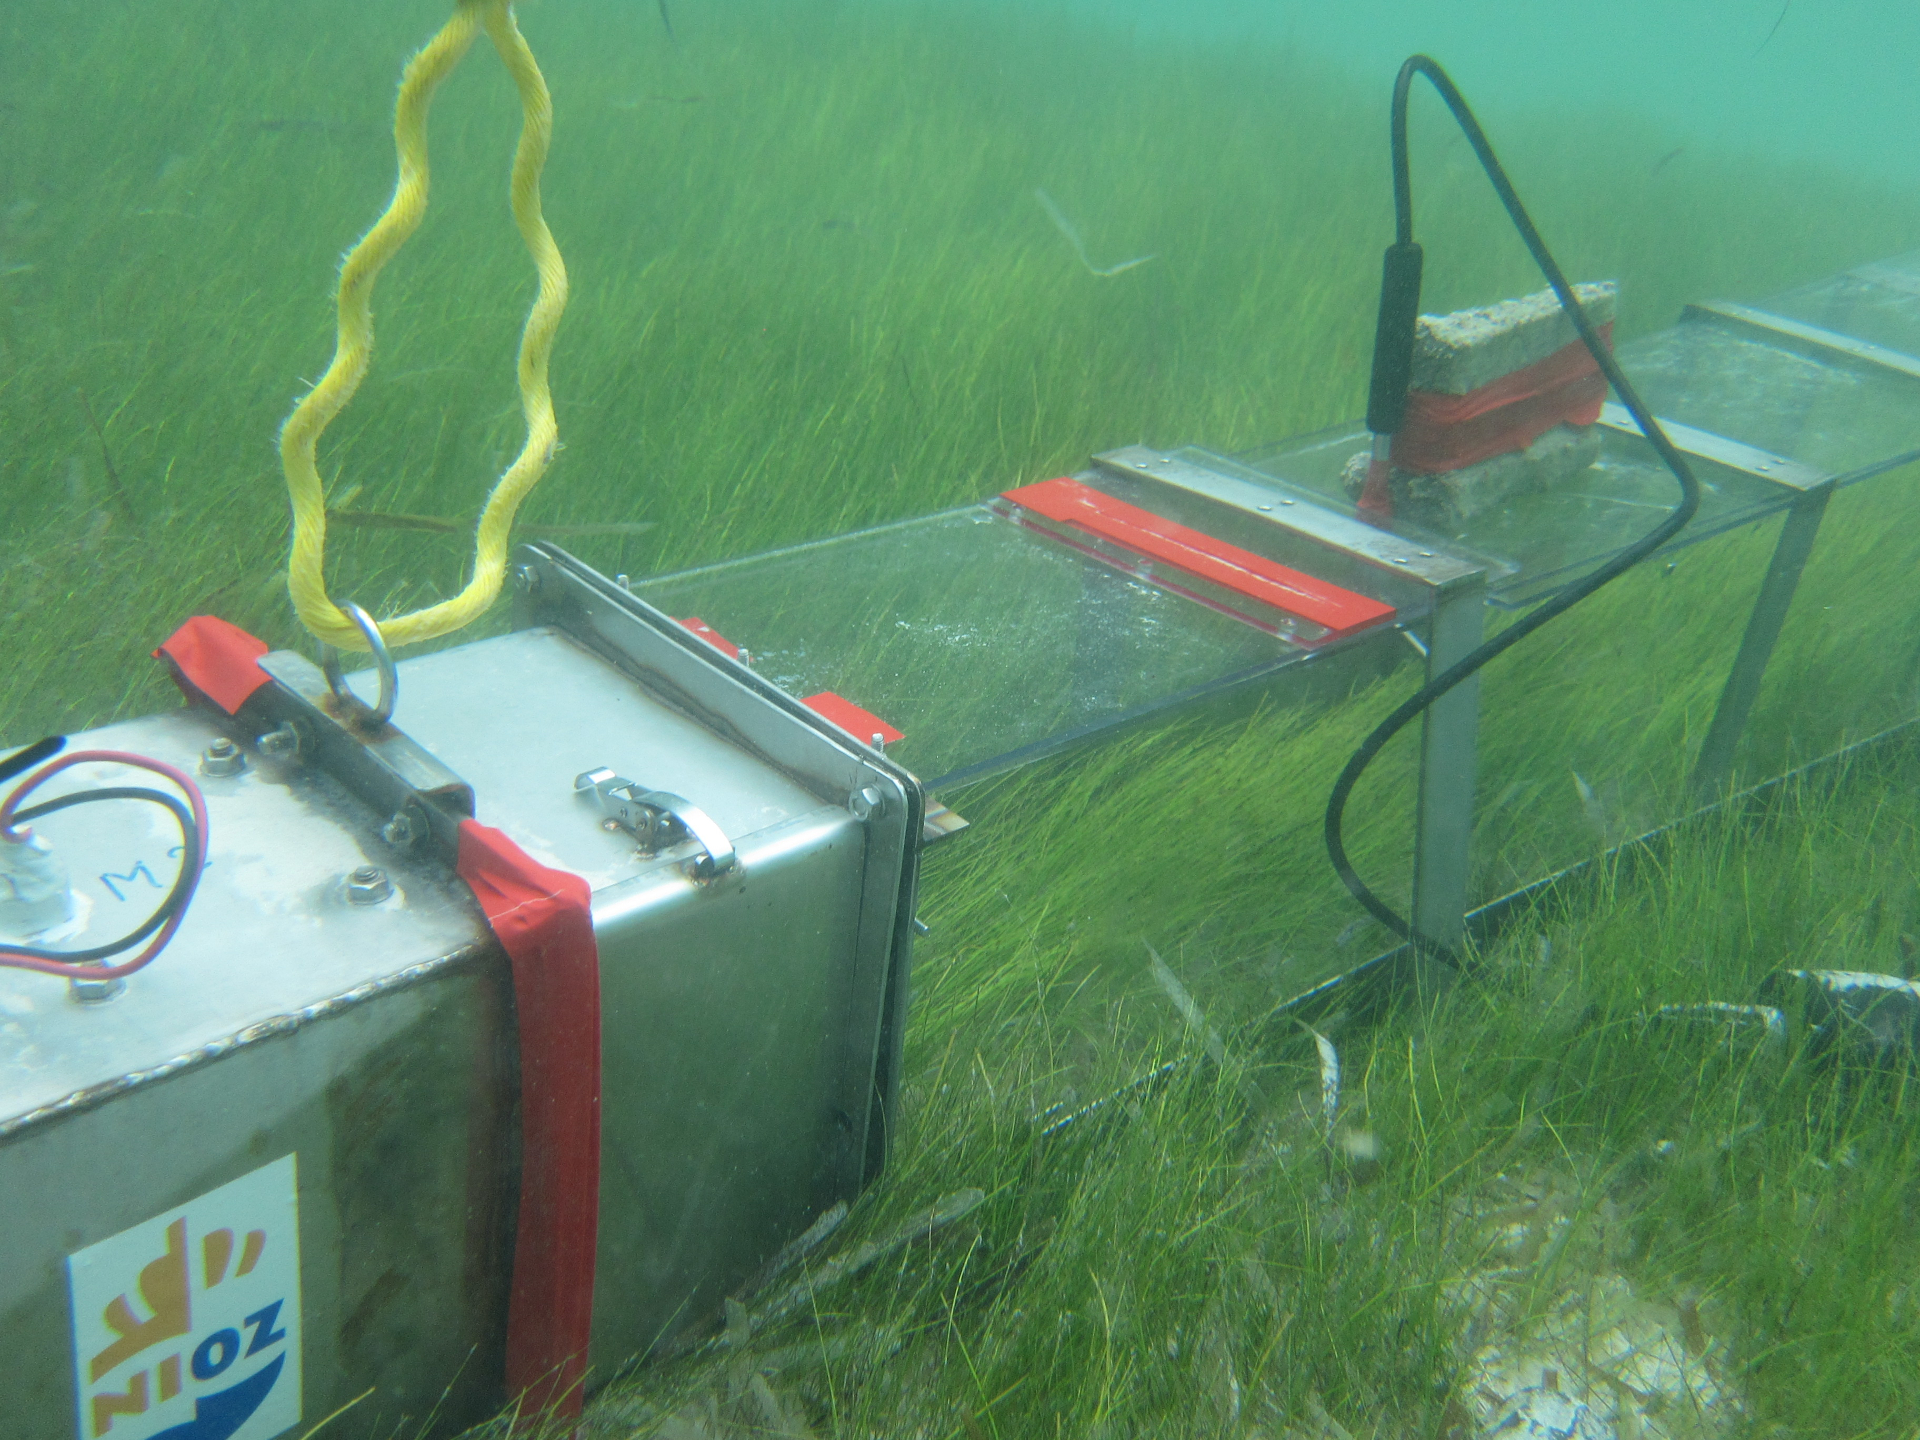 A portable water flume designed at NIOZ was used to measure the ability of seagrass to keep sand in place and prevent erosion. Photo credit: Rebecca James